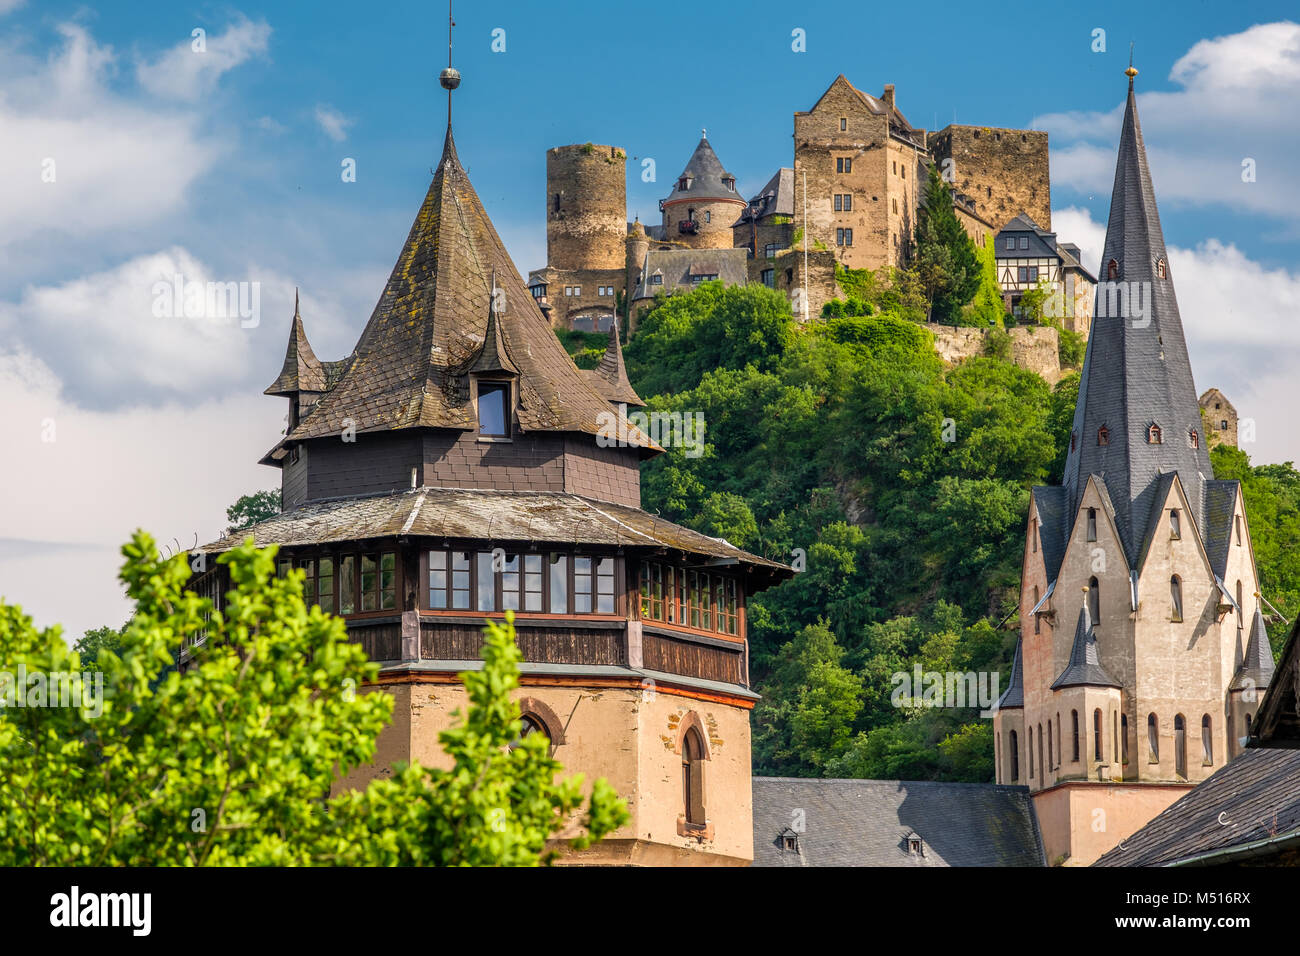 Schonburg Castle at Rhine Valley near Oberwesel, Germany. Stock Photo